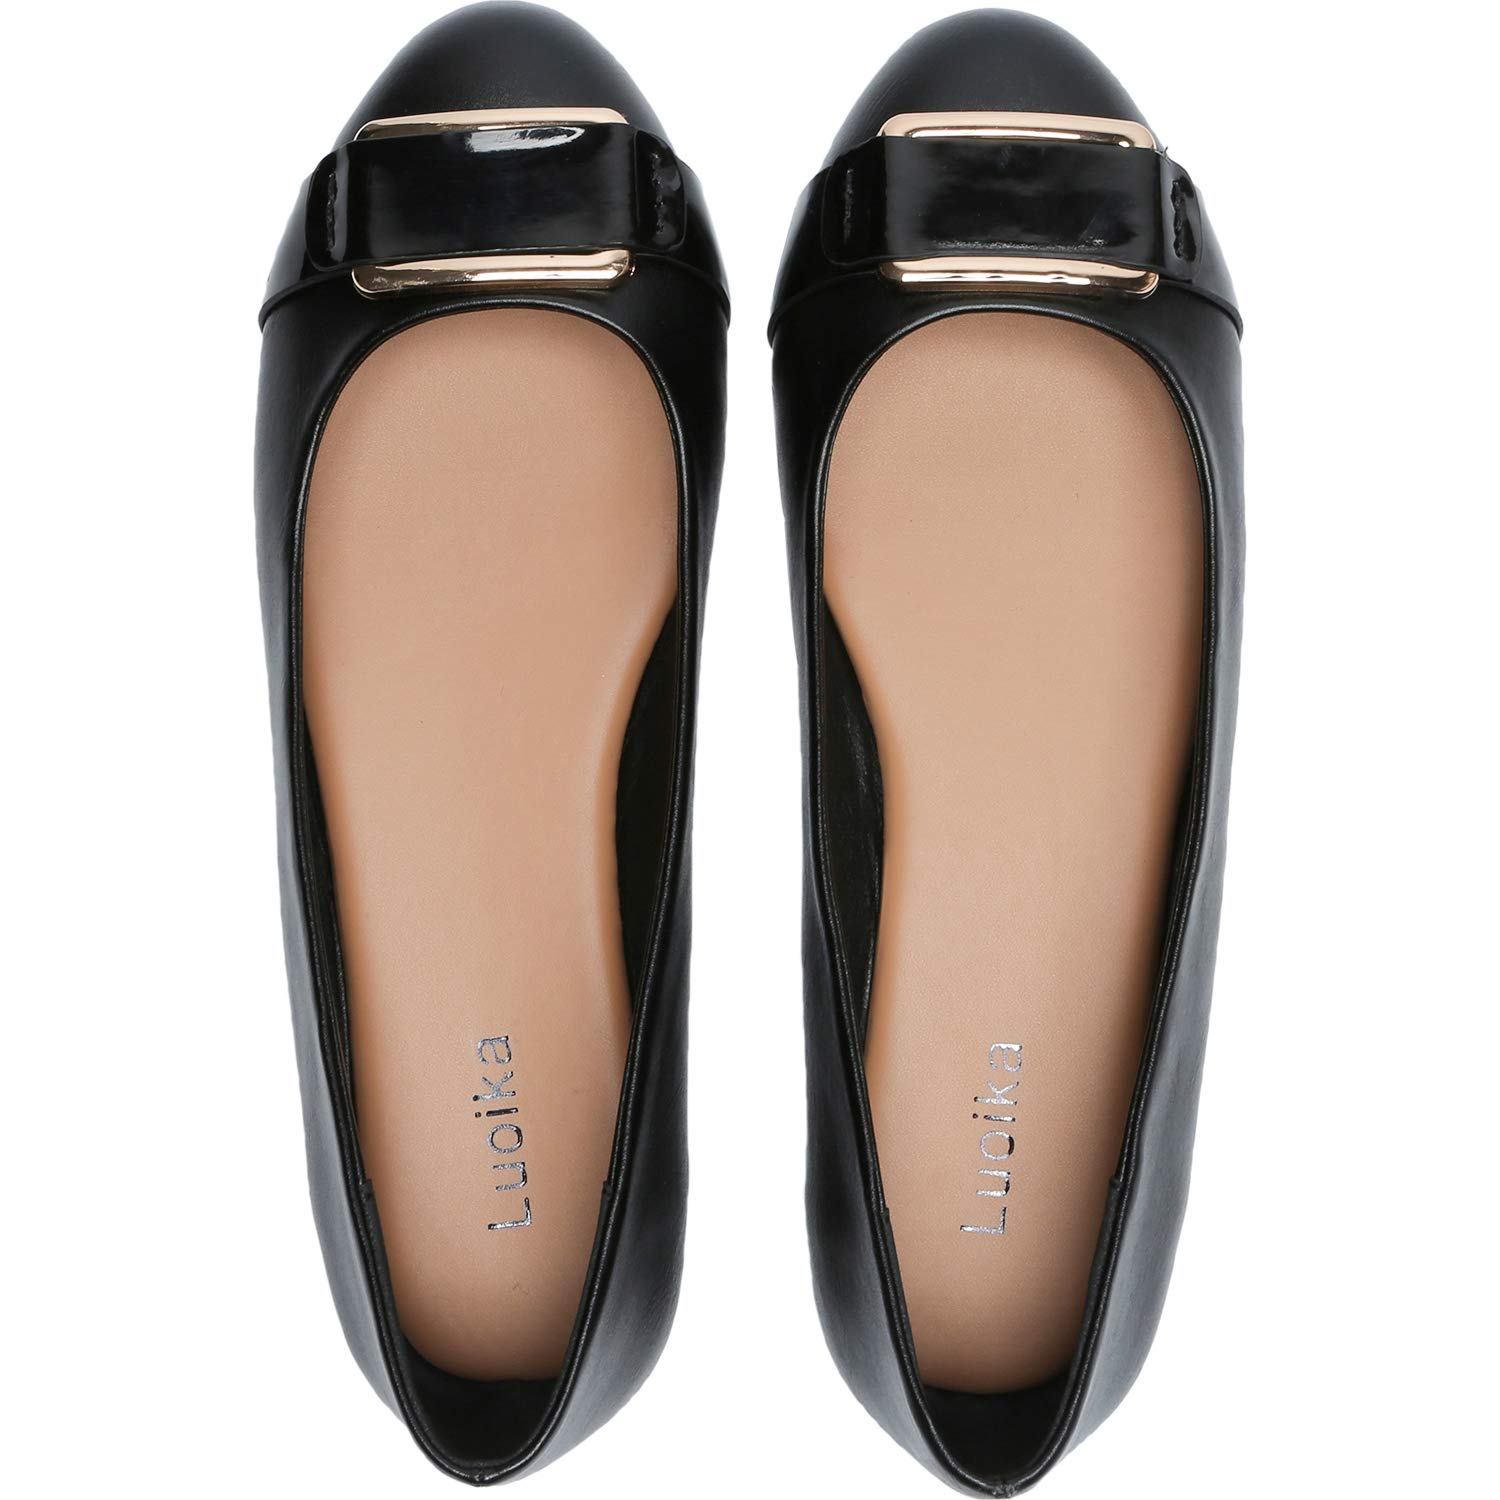 fbbcc49701757 Luoika Women's Wide Width Flat Shoes - Comfortable Slip On Round Toe Faux  Leather Ballet Flats.